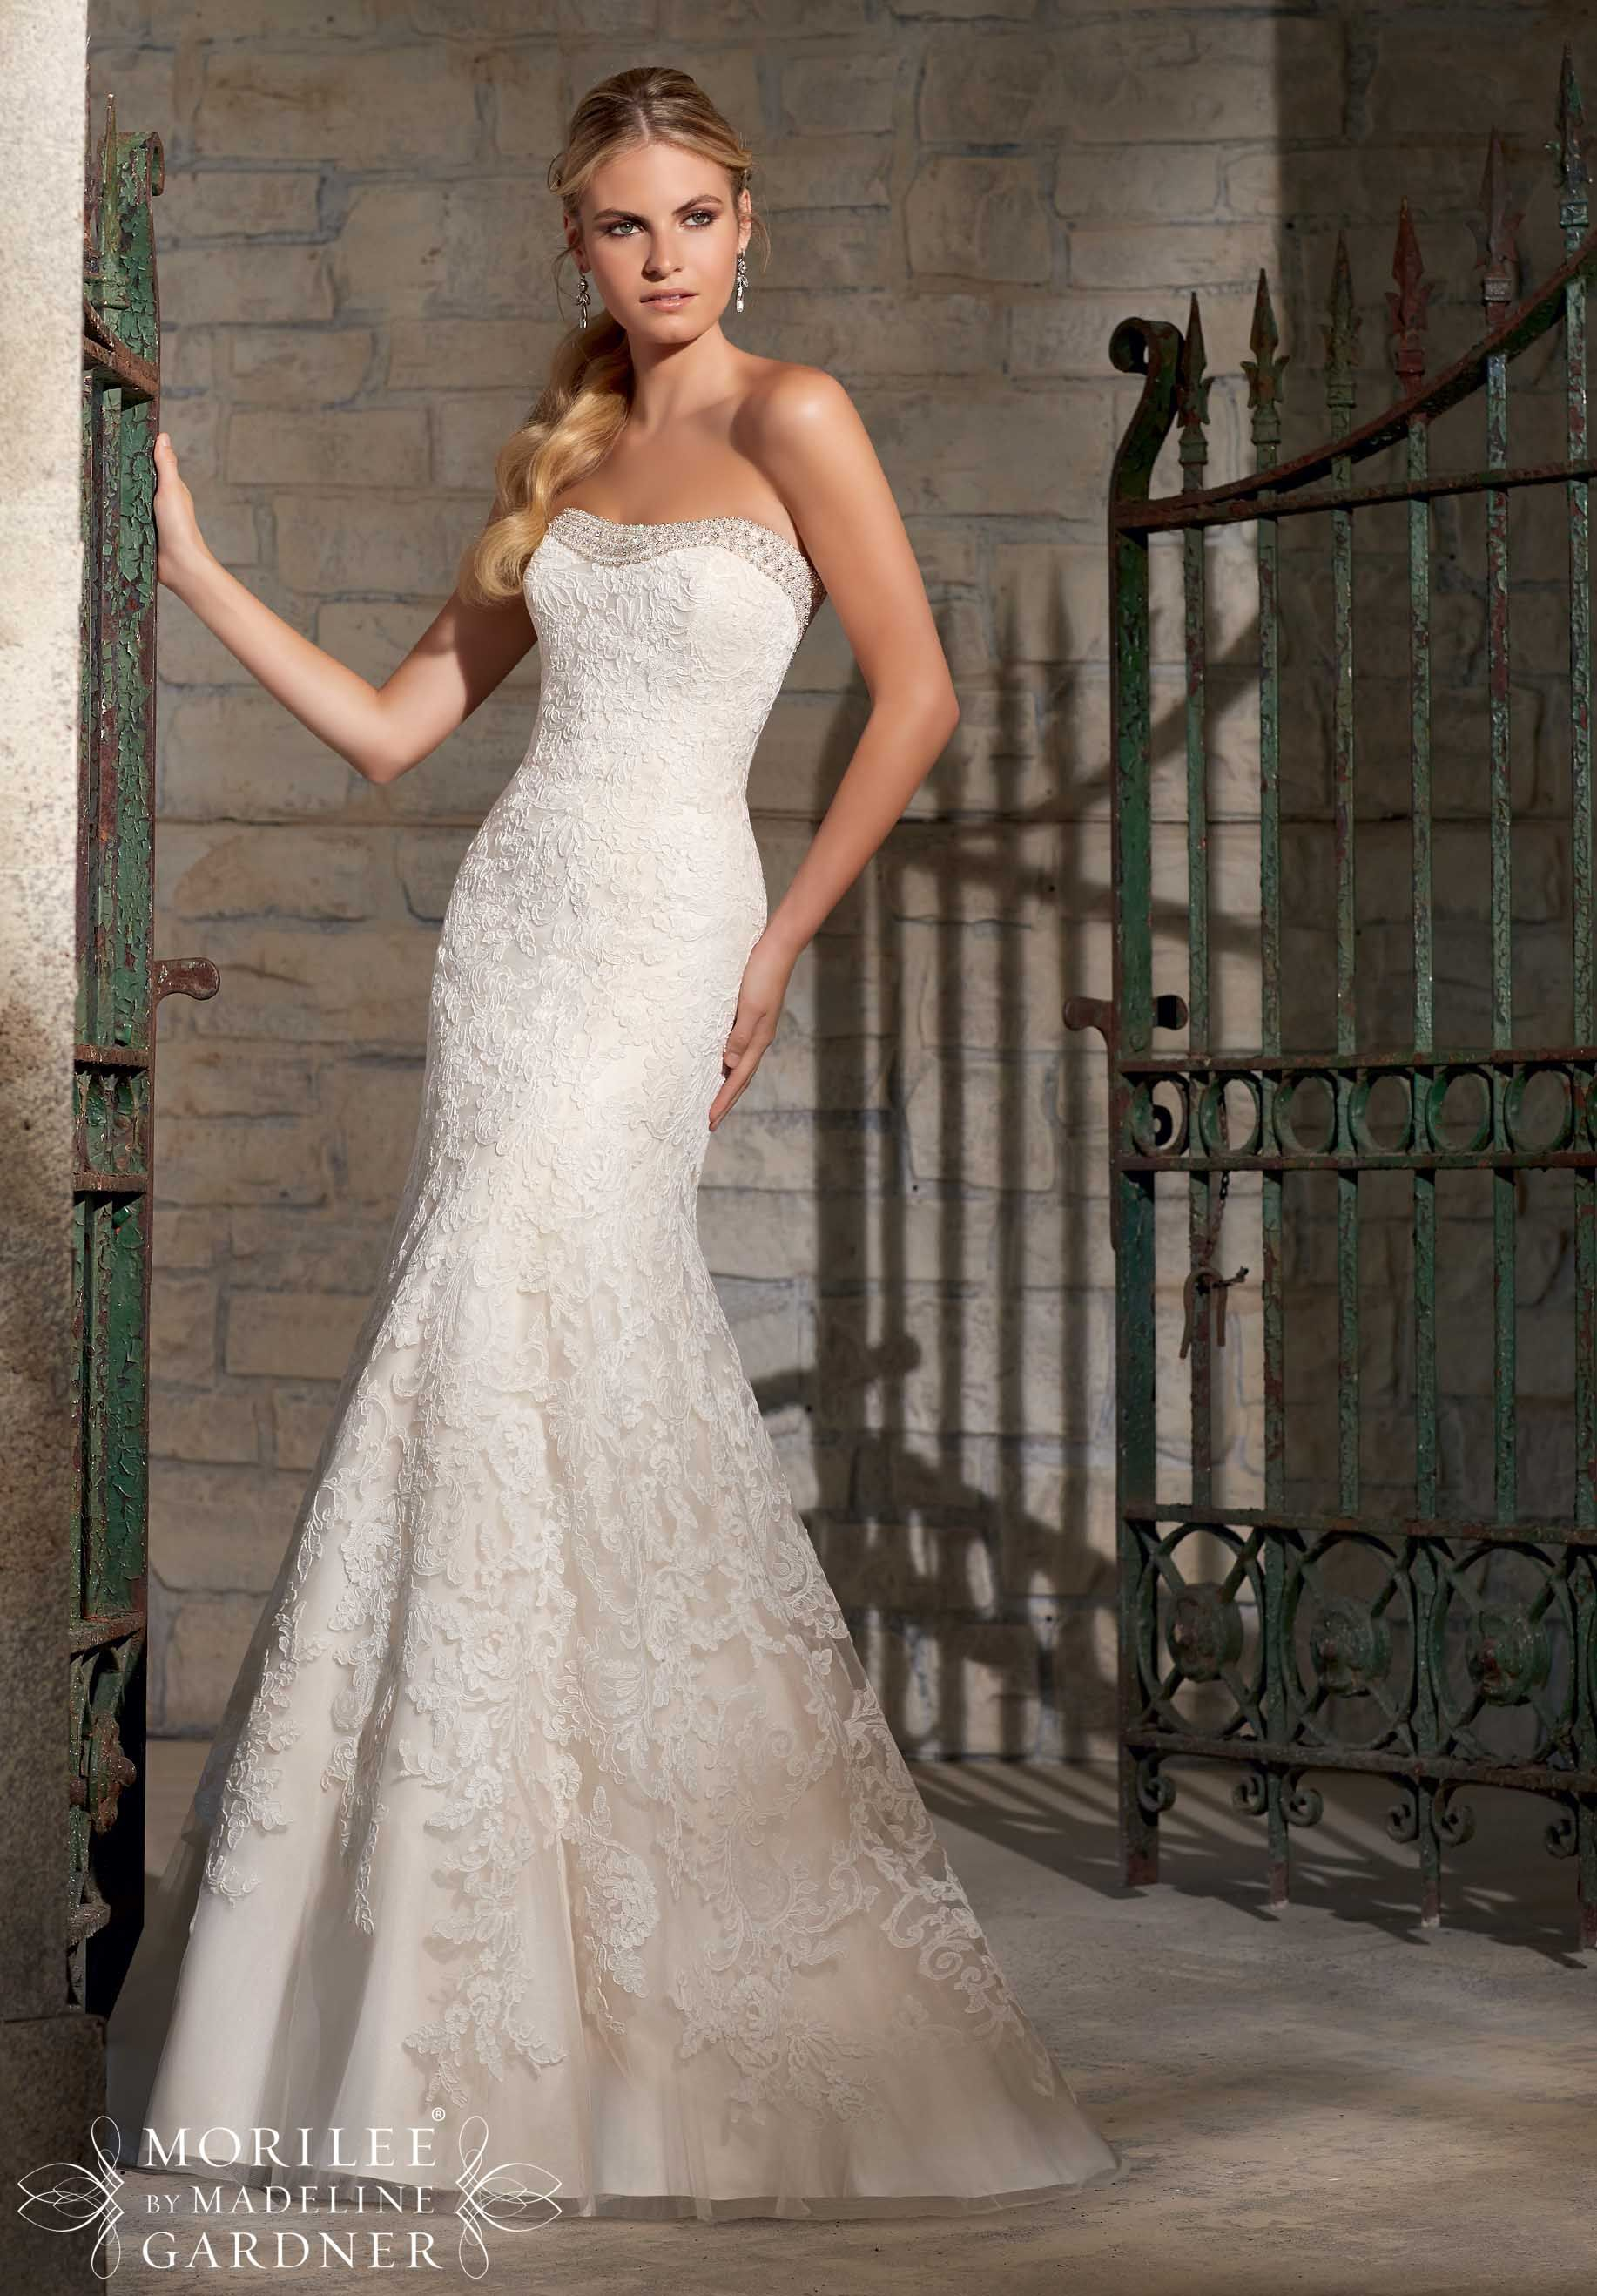 Champagne and ivory wedding dress  Wedding Gowns by Morilee featuring Calais Lace Appliques on Net